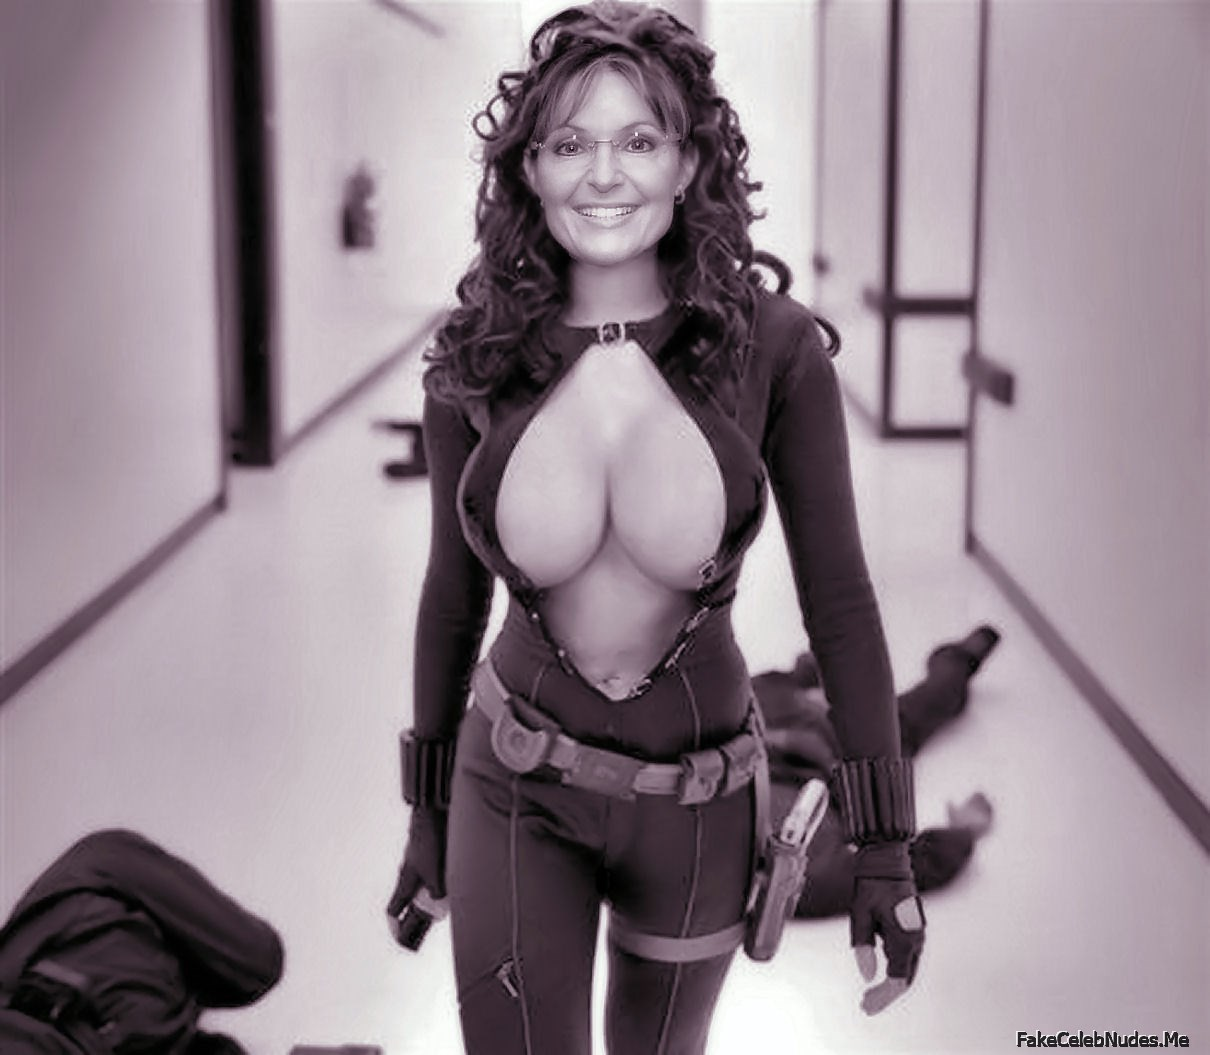 Sara palin naked but